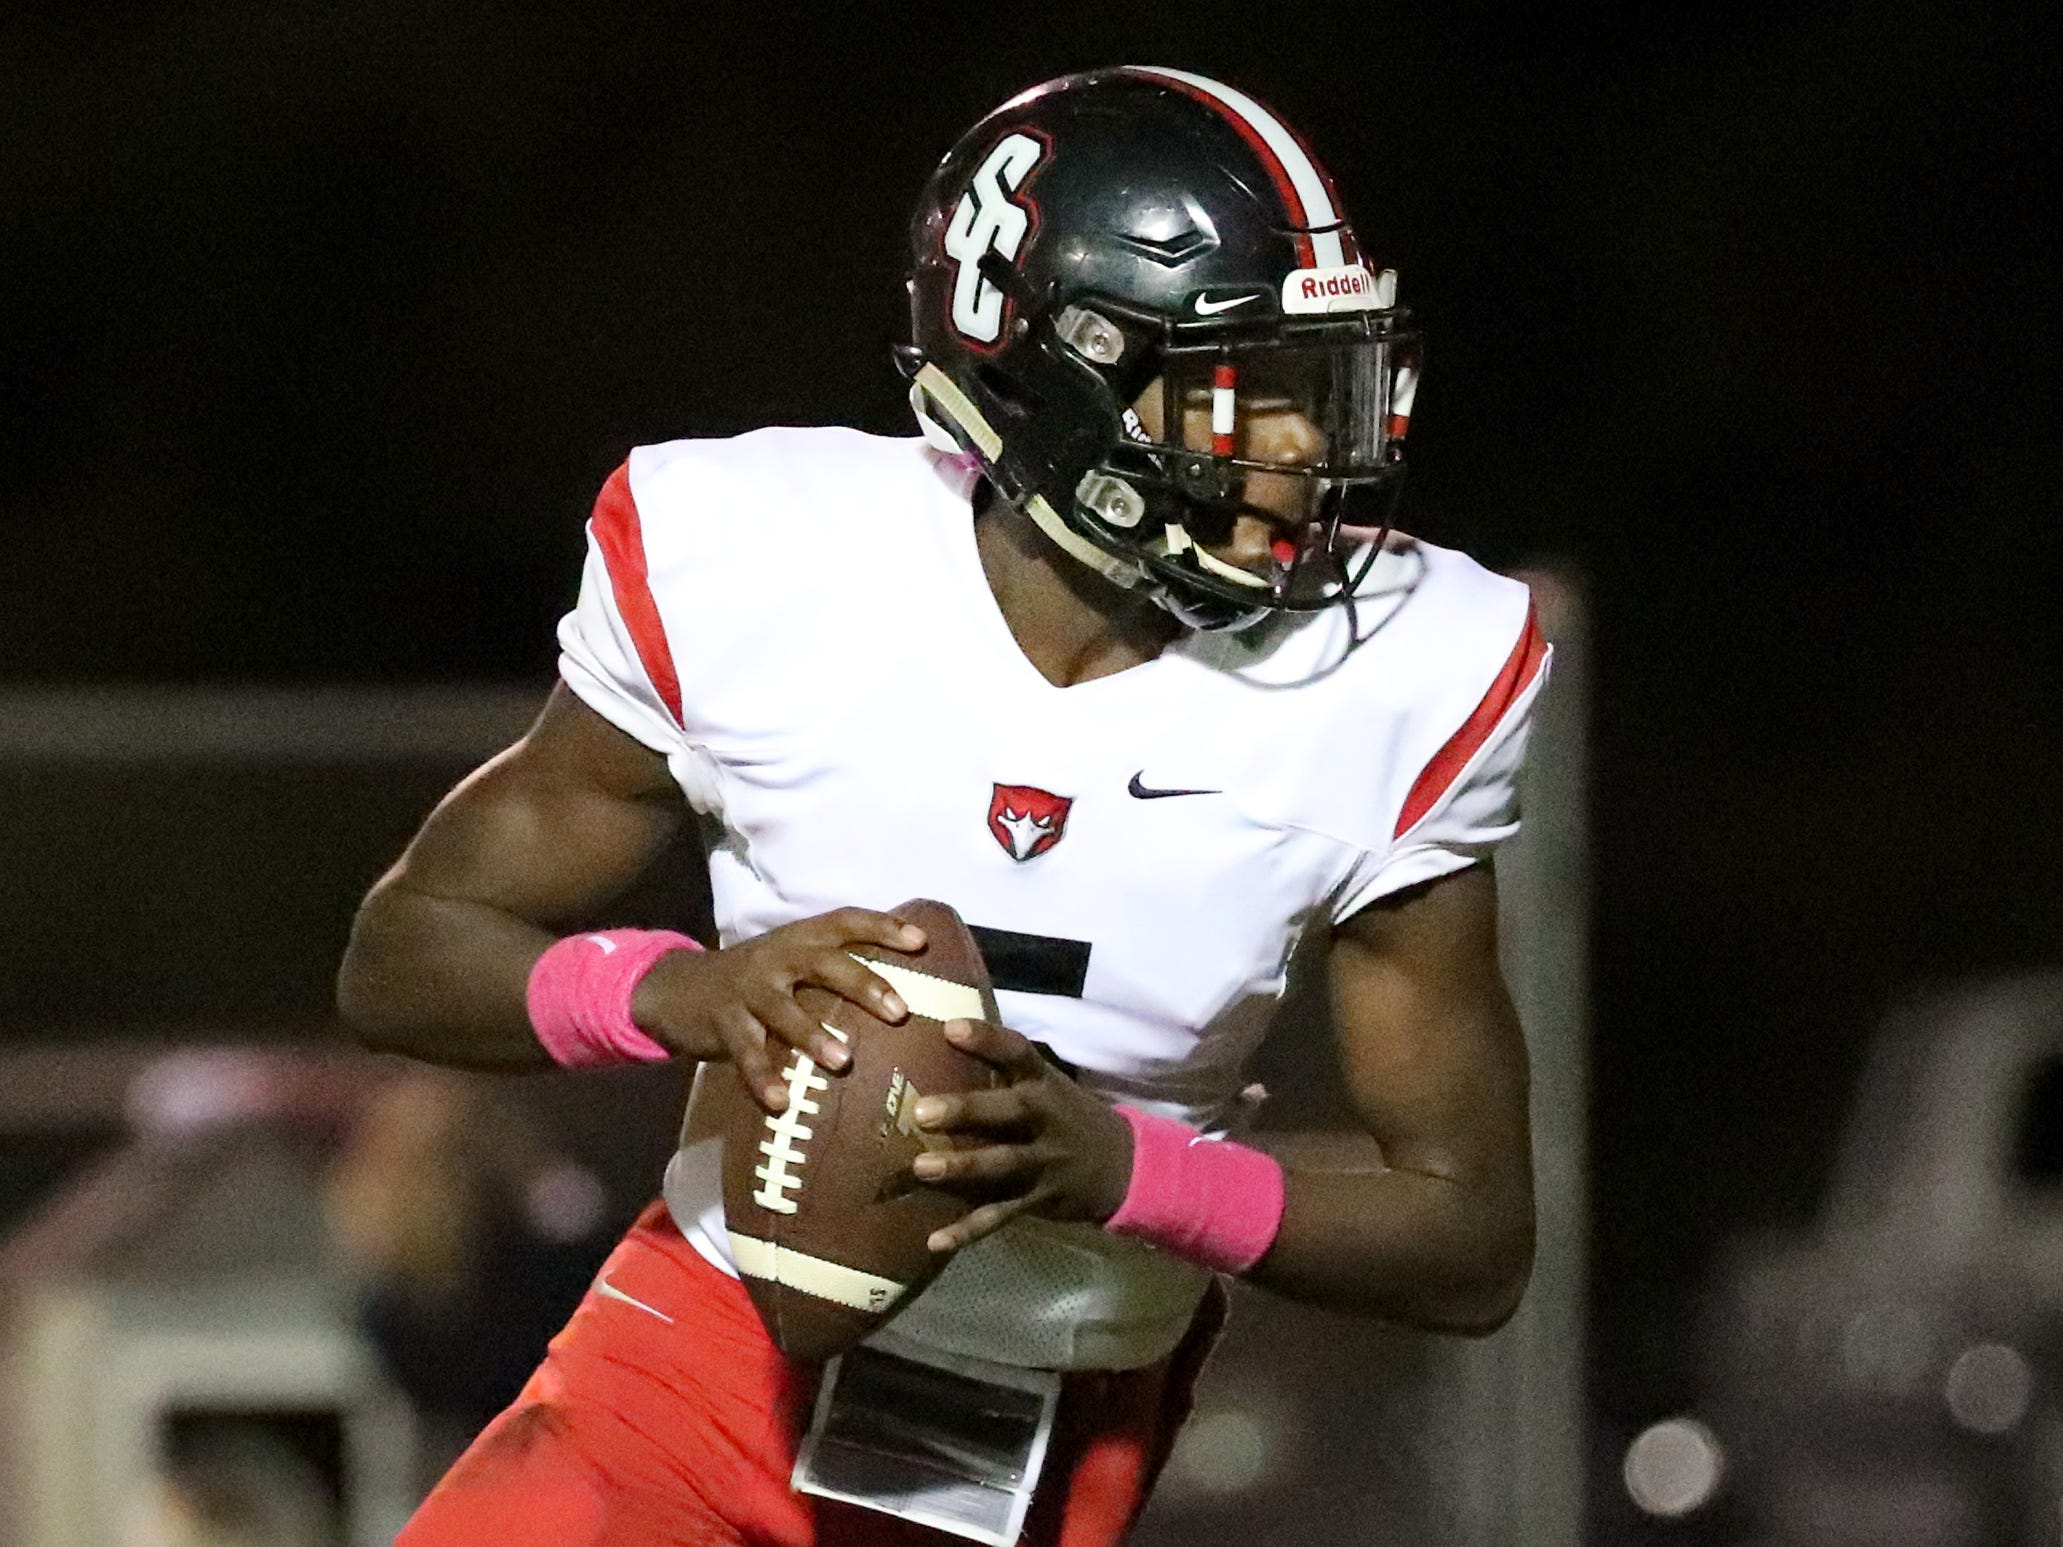 Stewarts Creek's quarterback Jonnie Simmons (5) looks for a player to pass to during the game against Smyrna at Smyrna High School on Friday, Oct. 12, 2018.